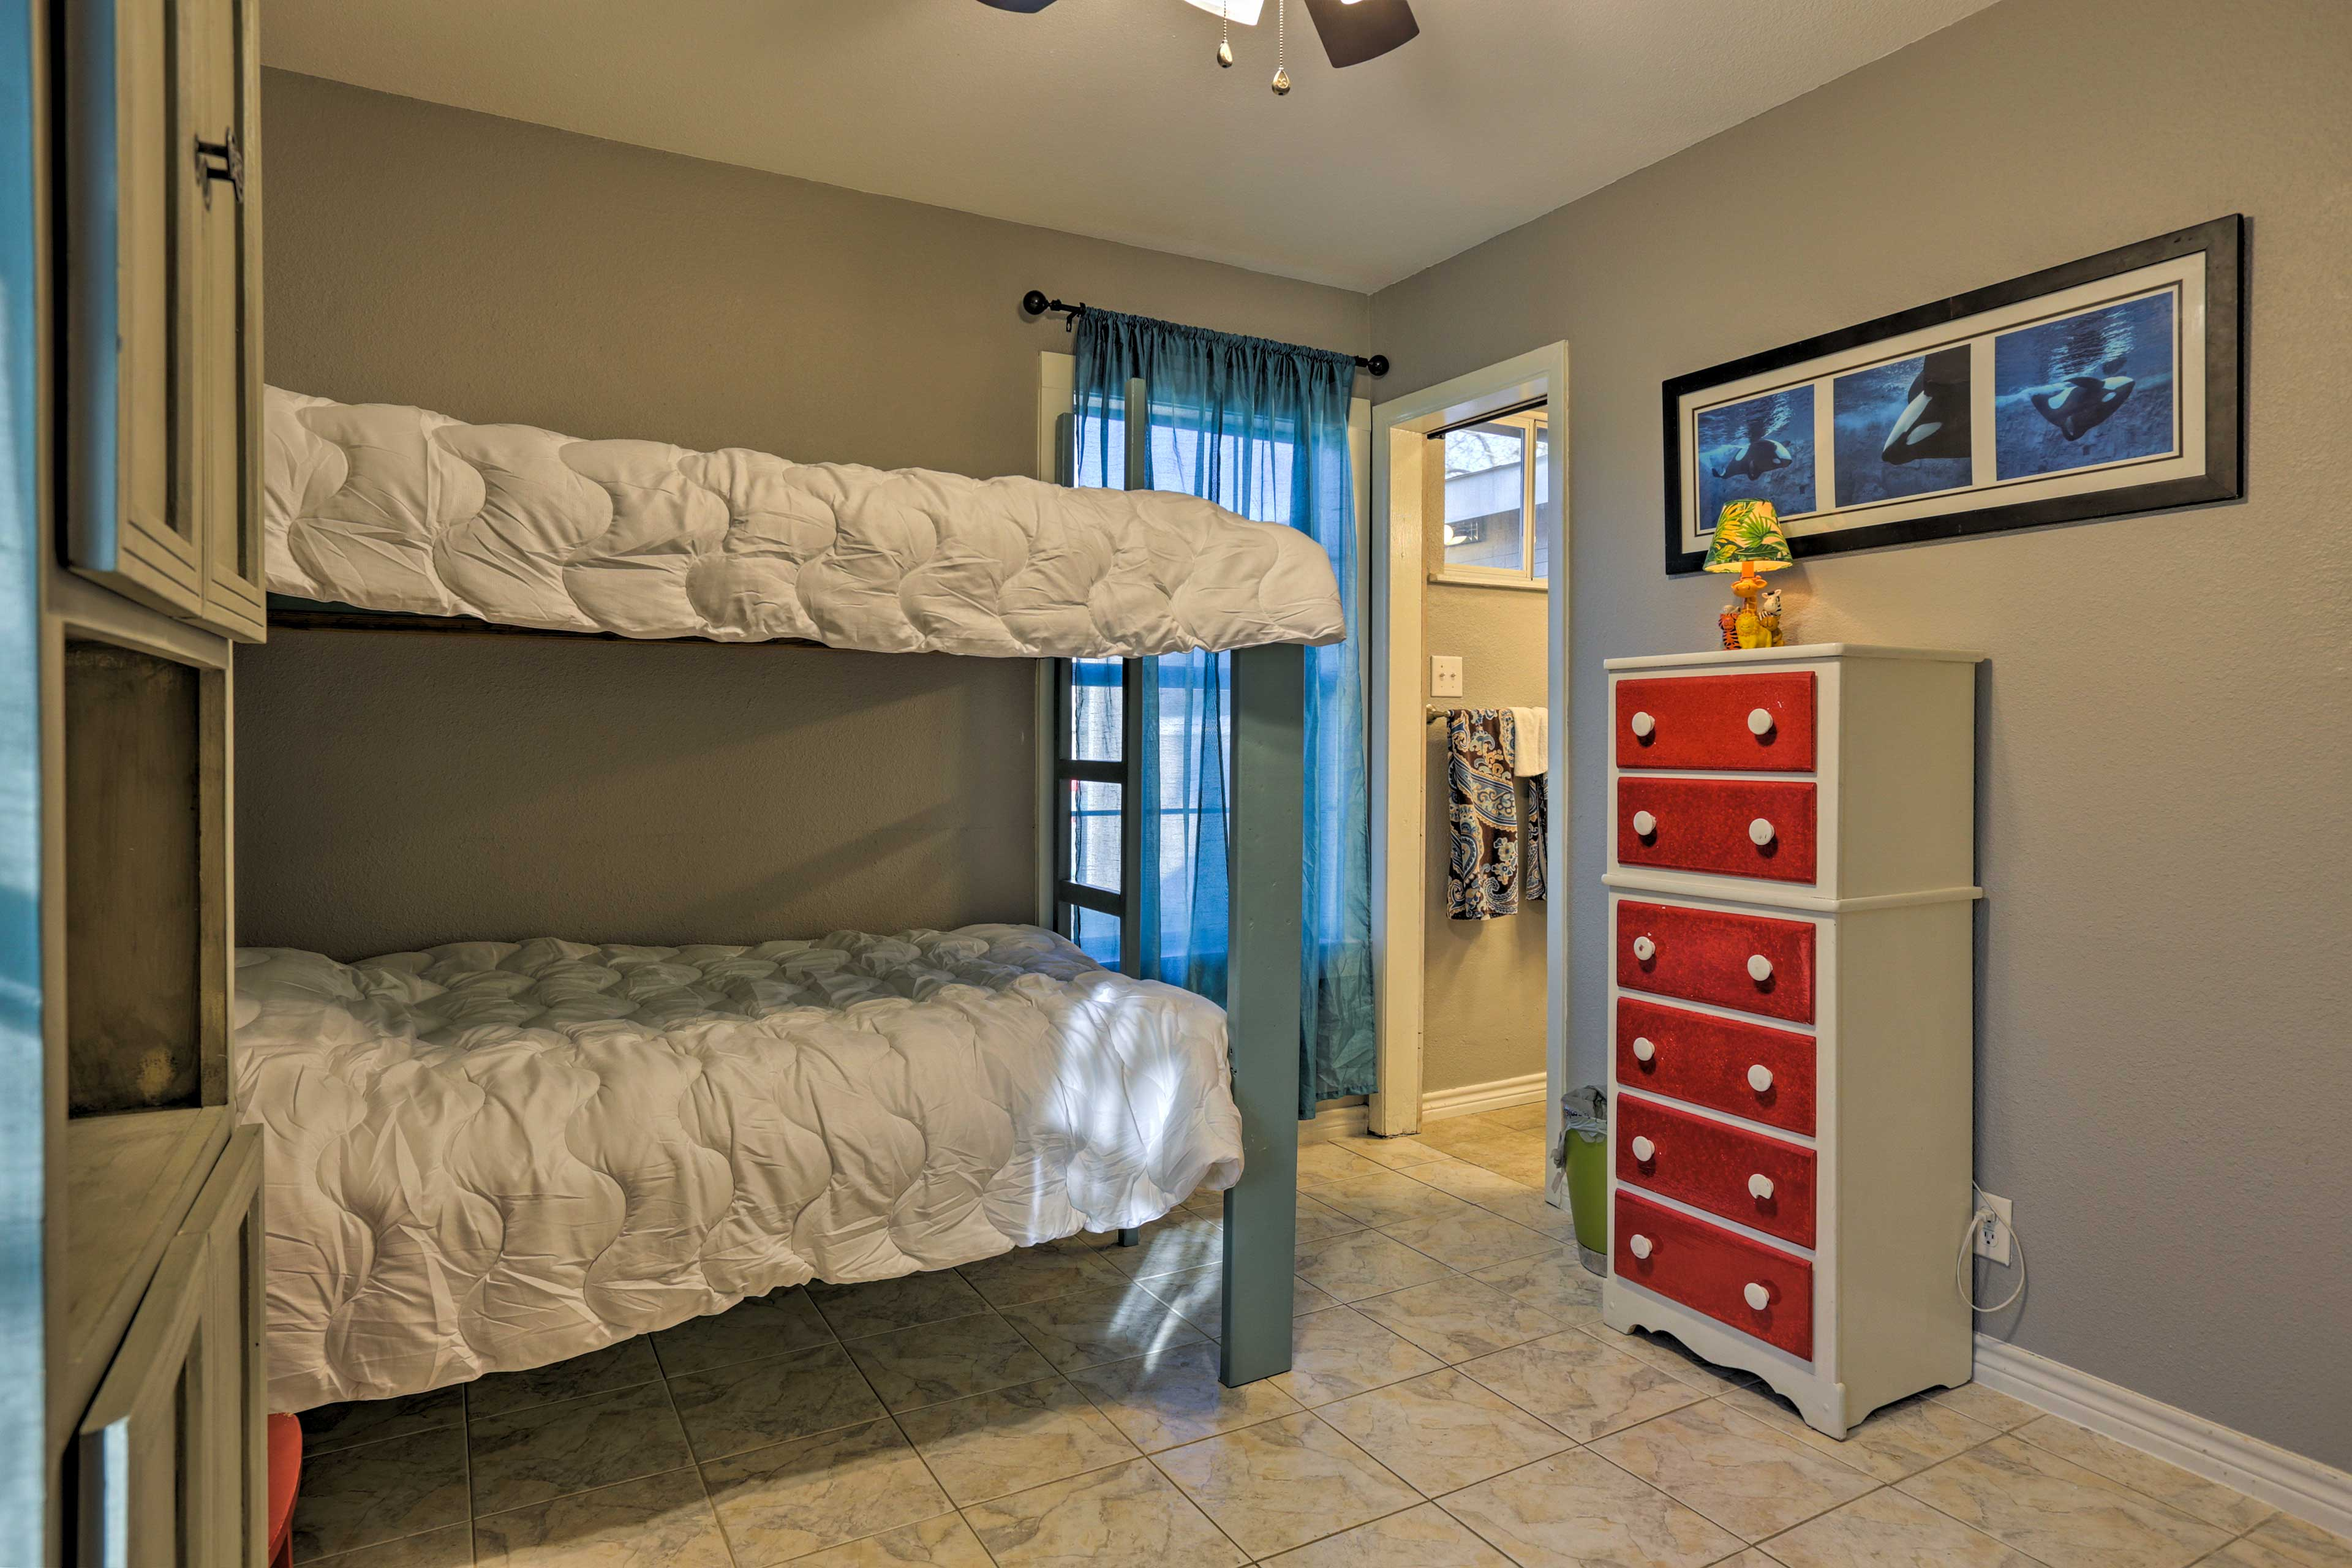 Two guests can share this bedroom, complete with a twin-over-twin bunk bed.